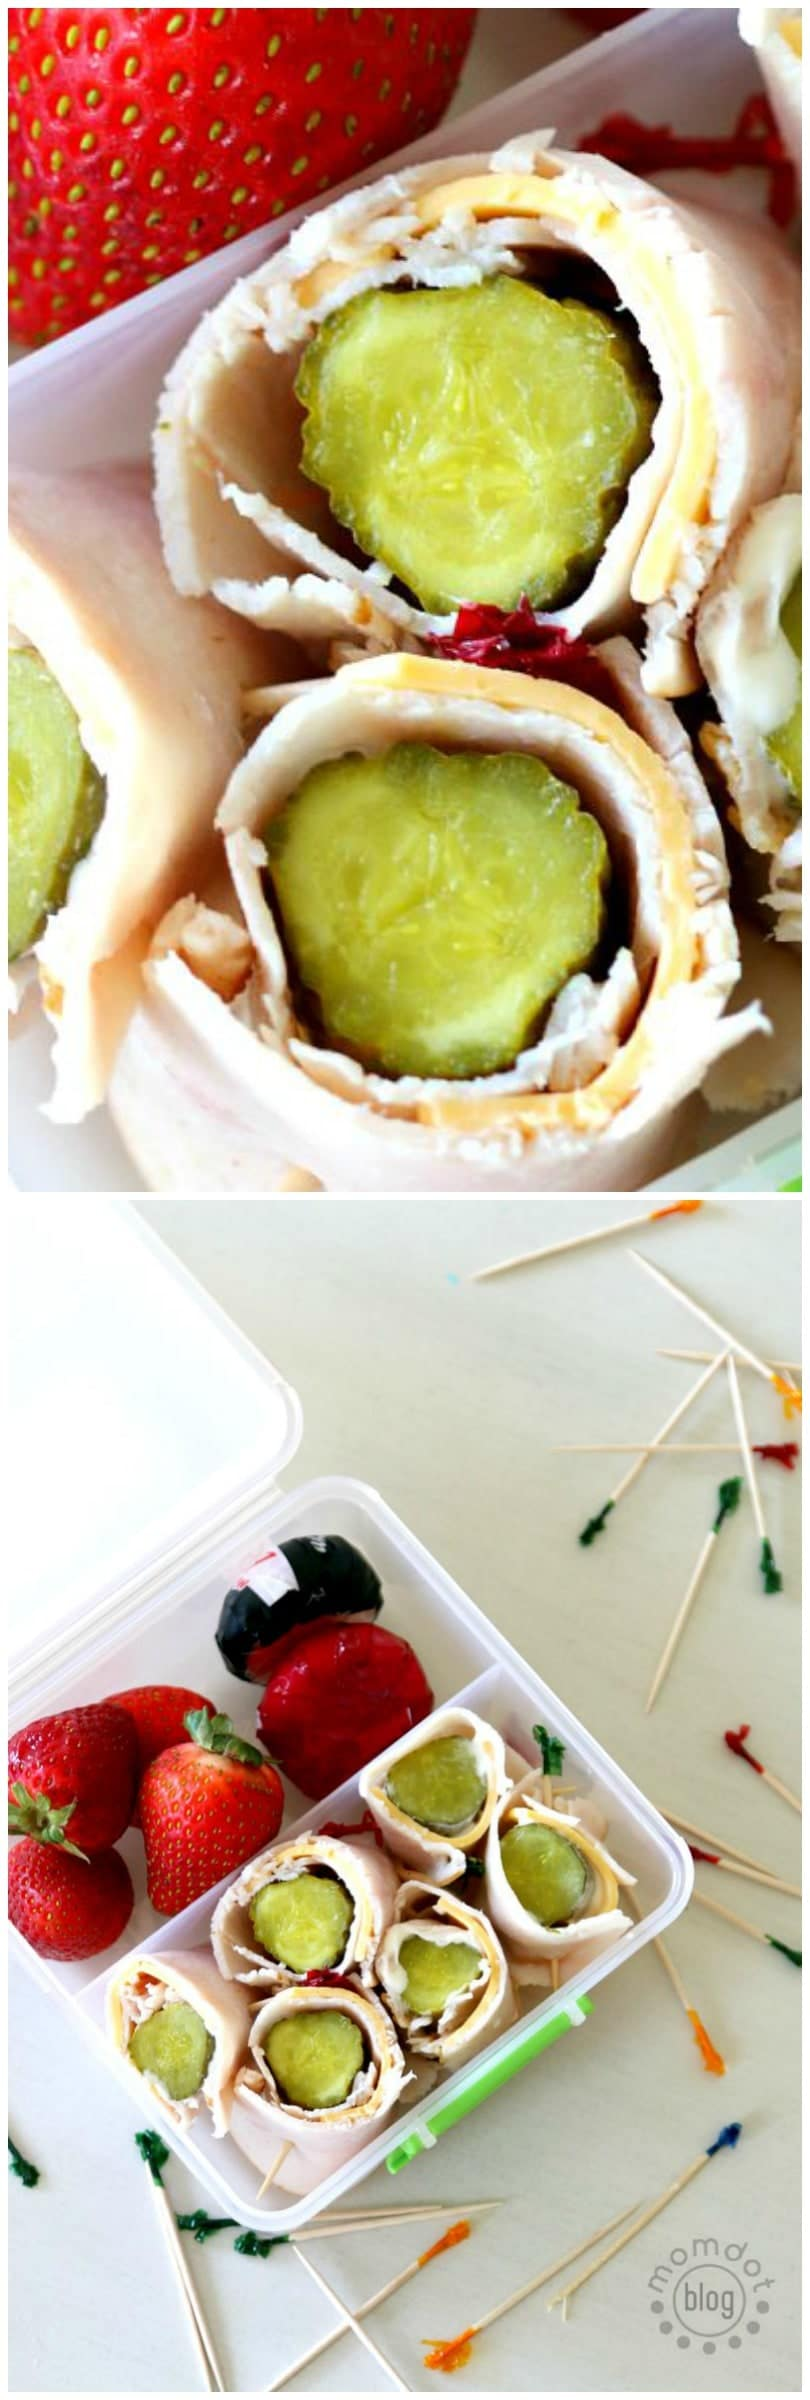 Turkey and Pickle roll ups | Easy Kids Lunch | Alternative to a Sandwich | Pickle Snack and Appetizer